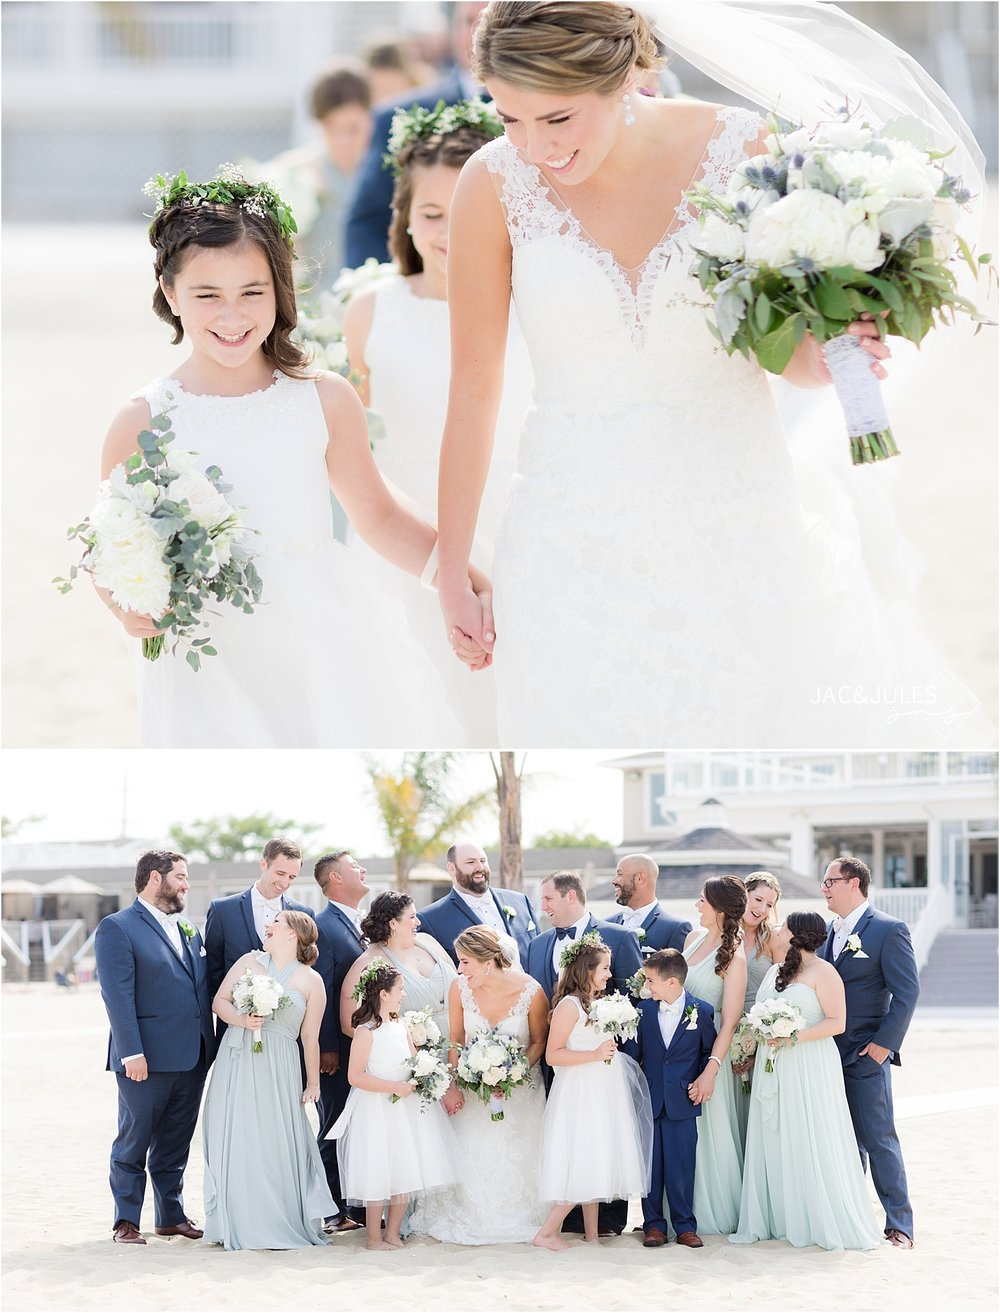 bride and flower girl walking on beach with bridal party in sea bright